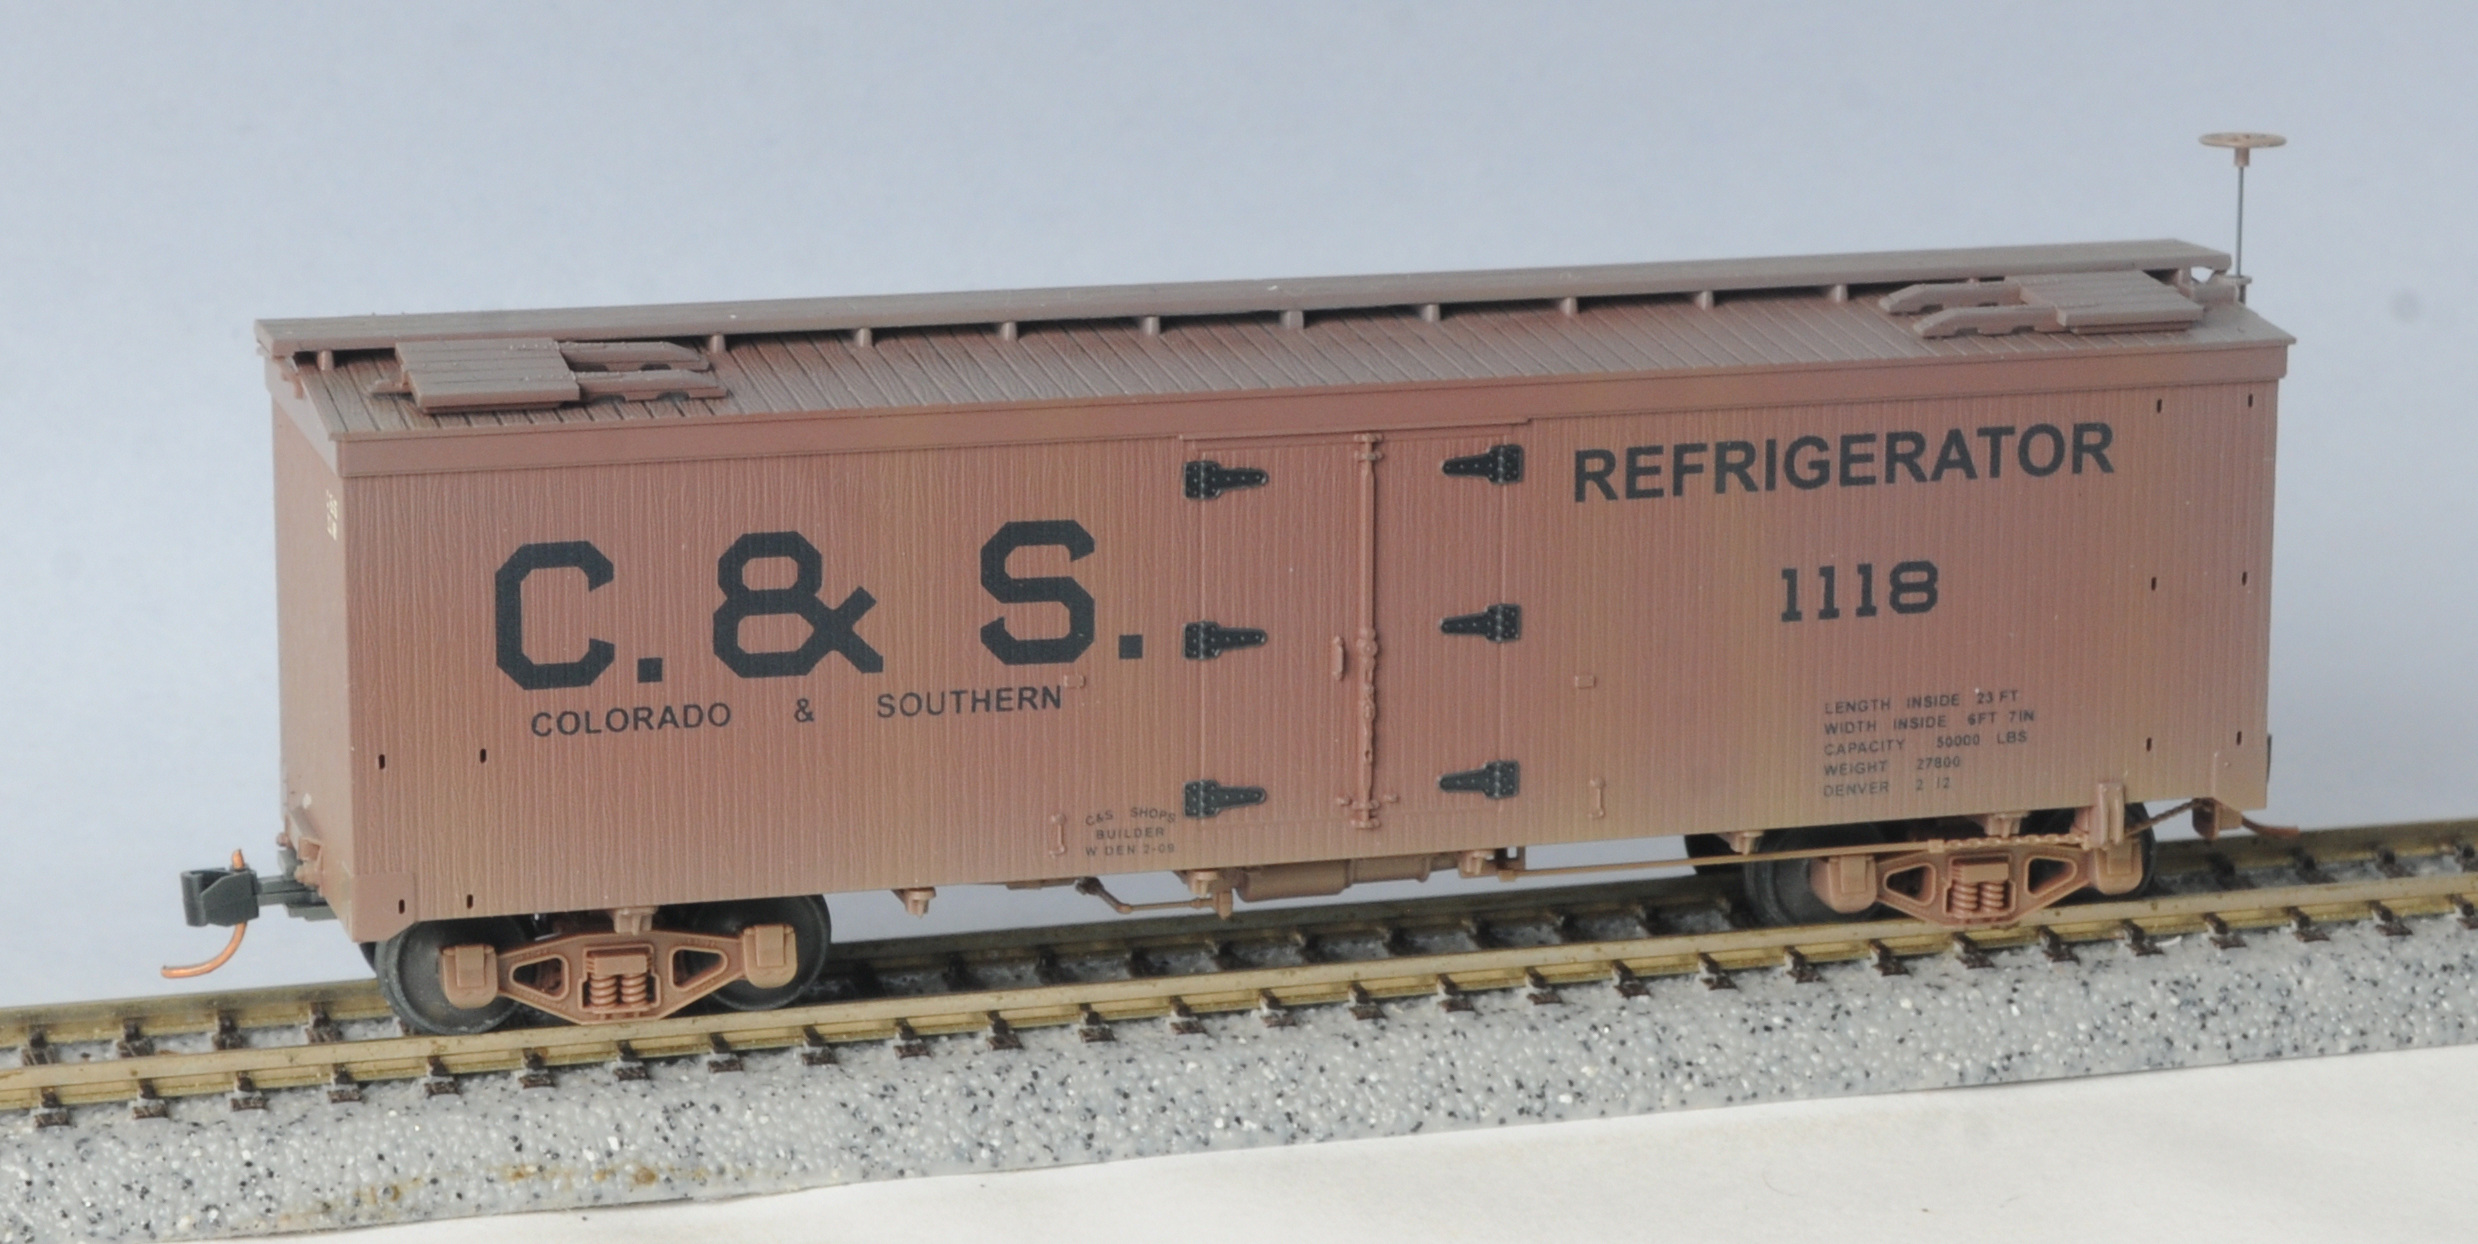 HO Scale - Micro-Trains - 850 44 060 - Reefer, Ice, Wood - Colorado & Southern - 1118